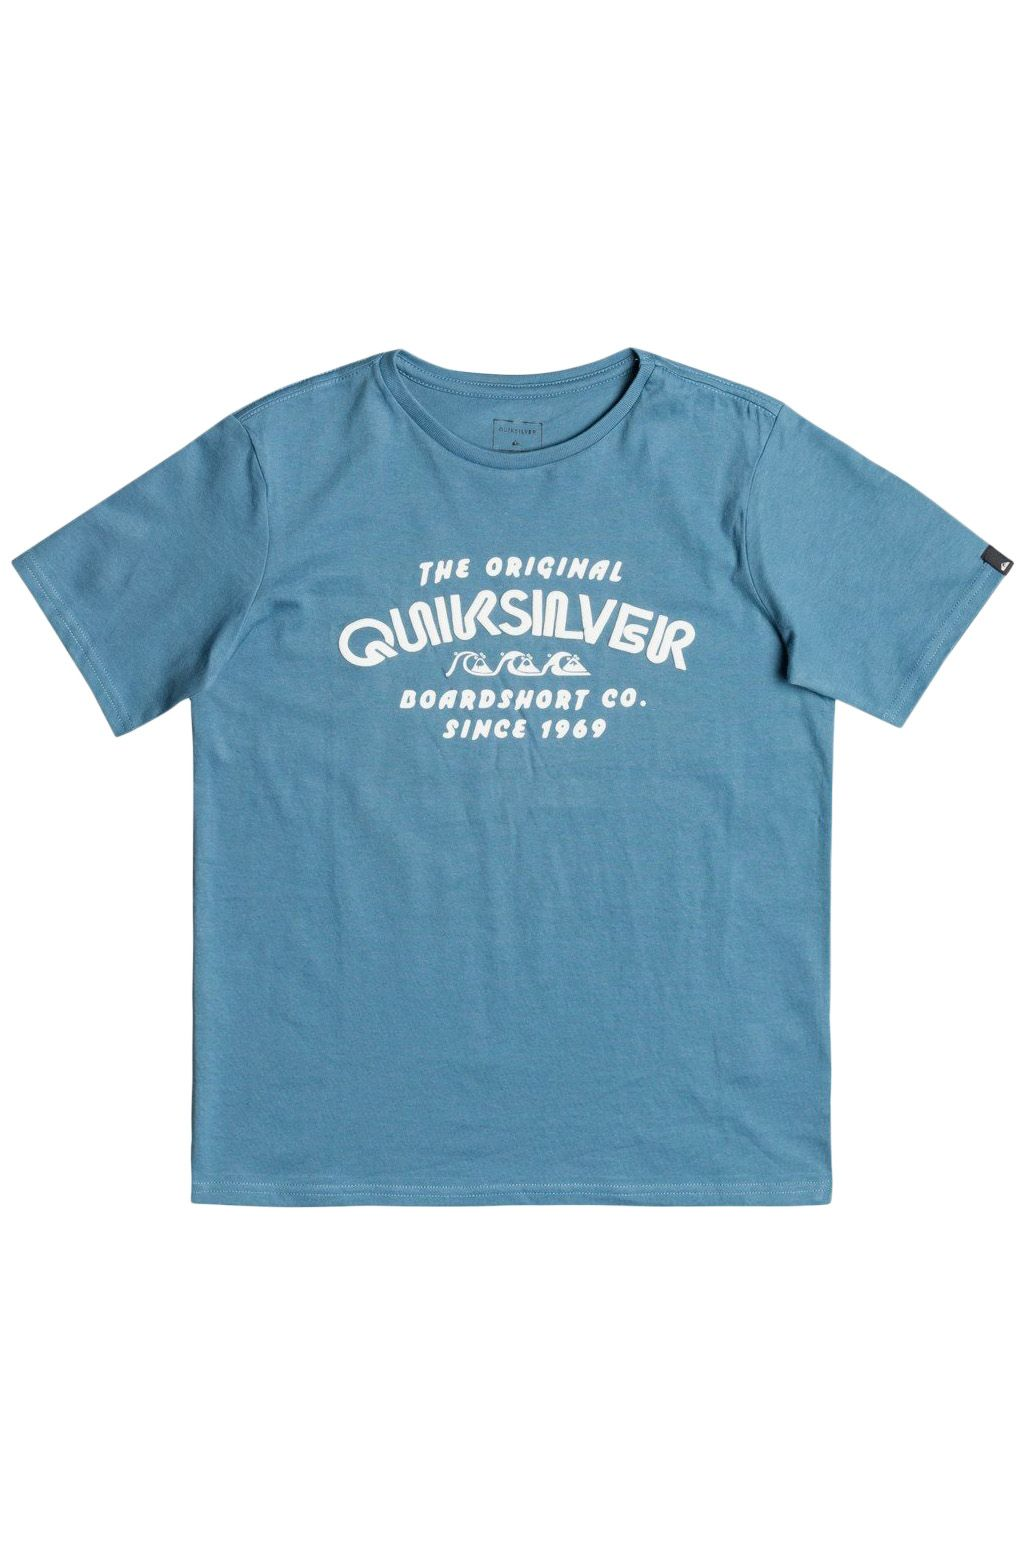 T-Shirt Quiksilver WILDERMILSSYTH B TEES Captains Blue